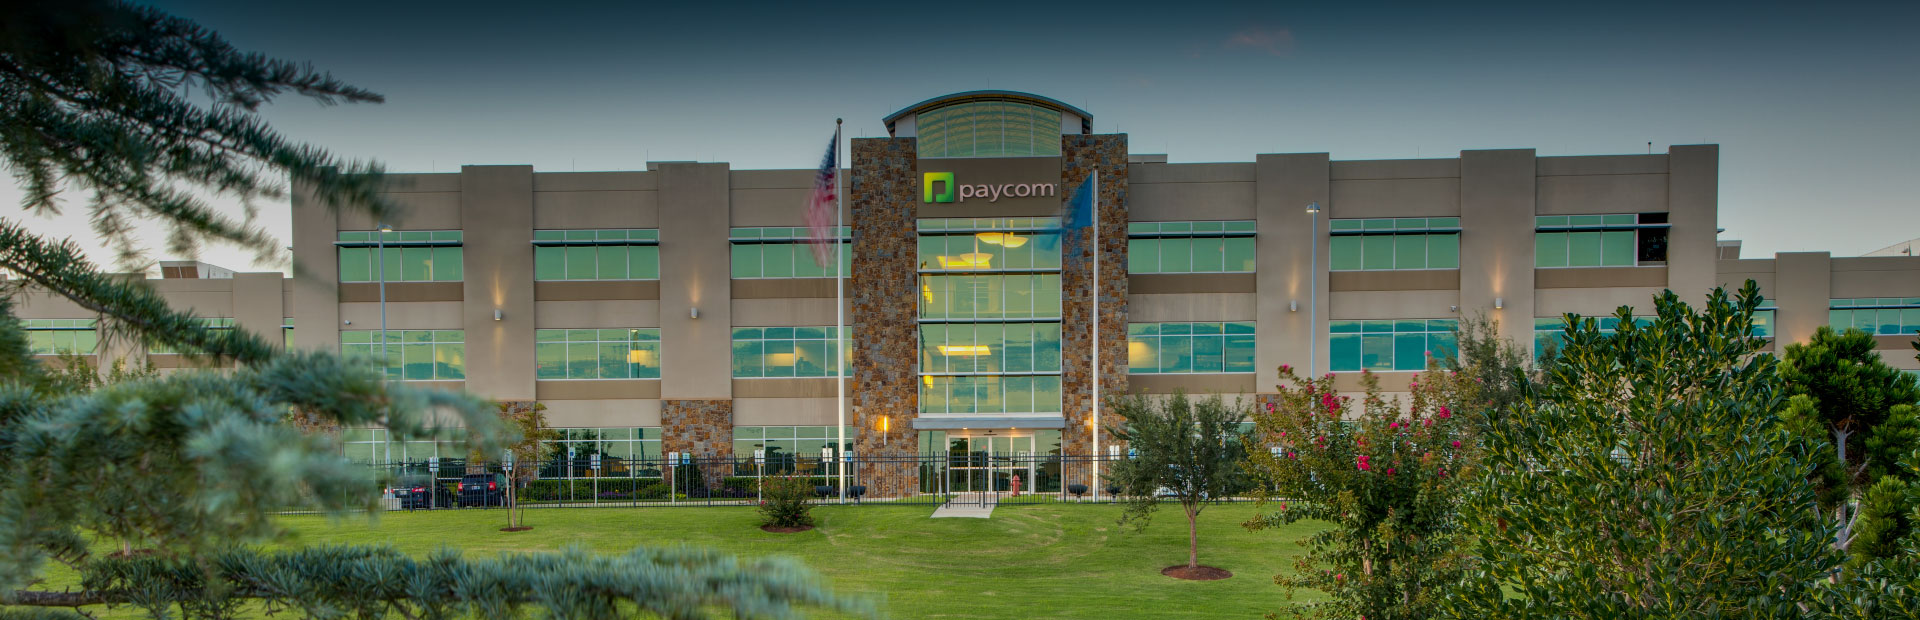 Paycom Interviewing for Over 80 Corporate Positions at Hiring Event